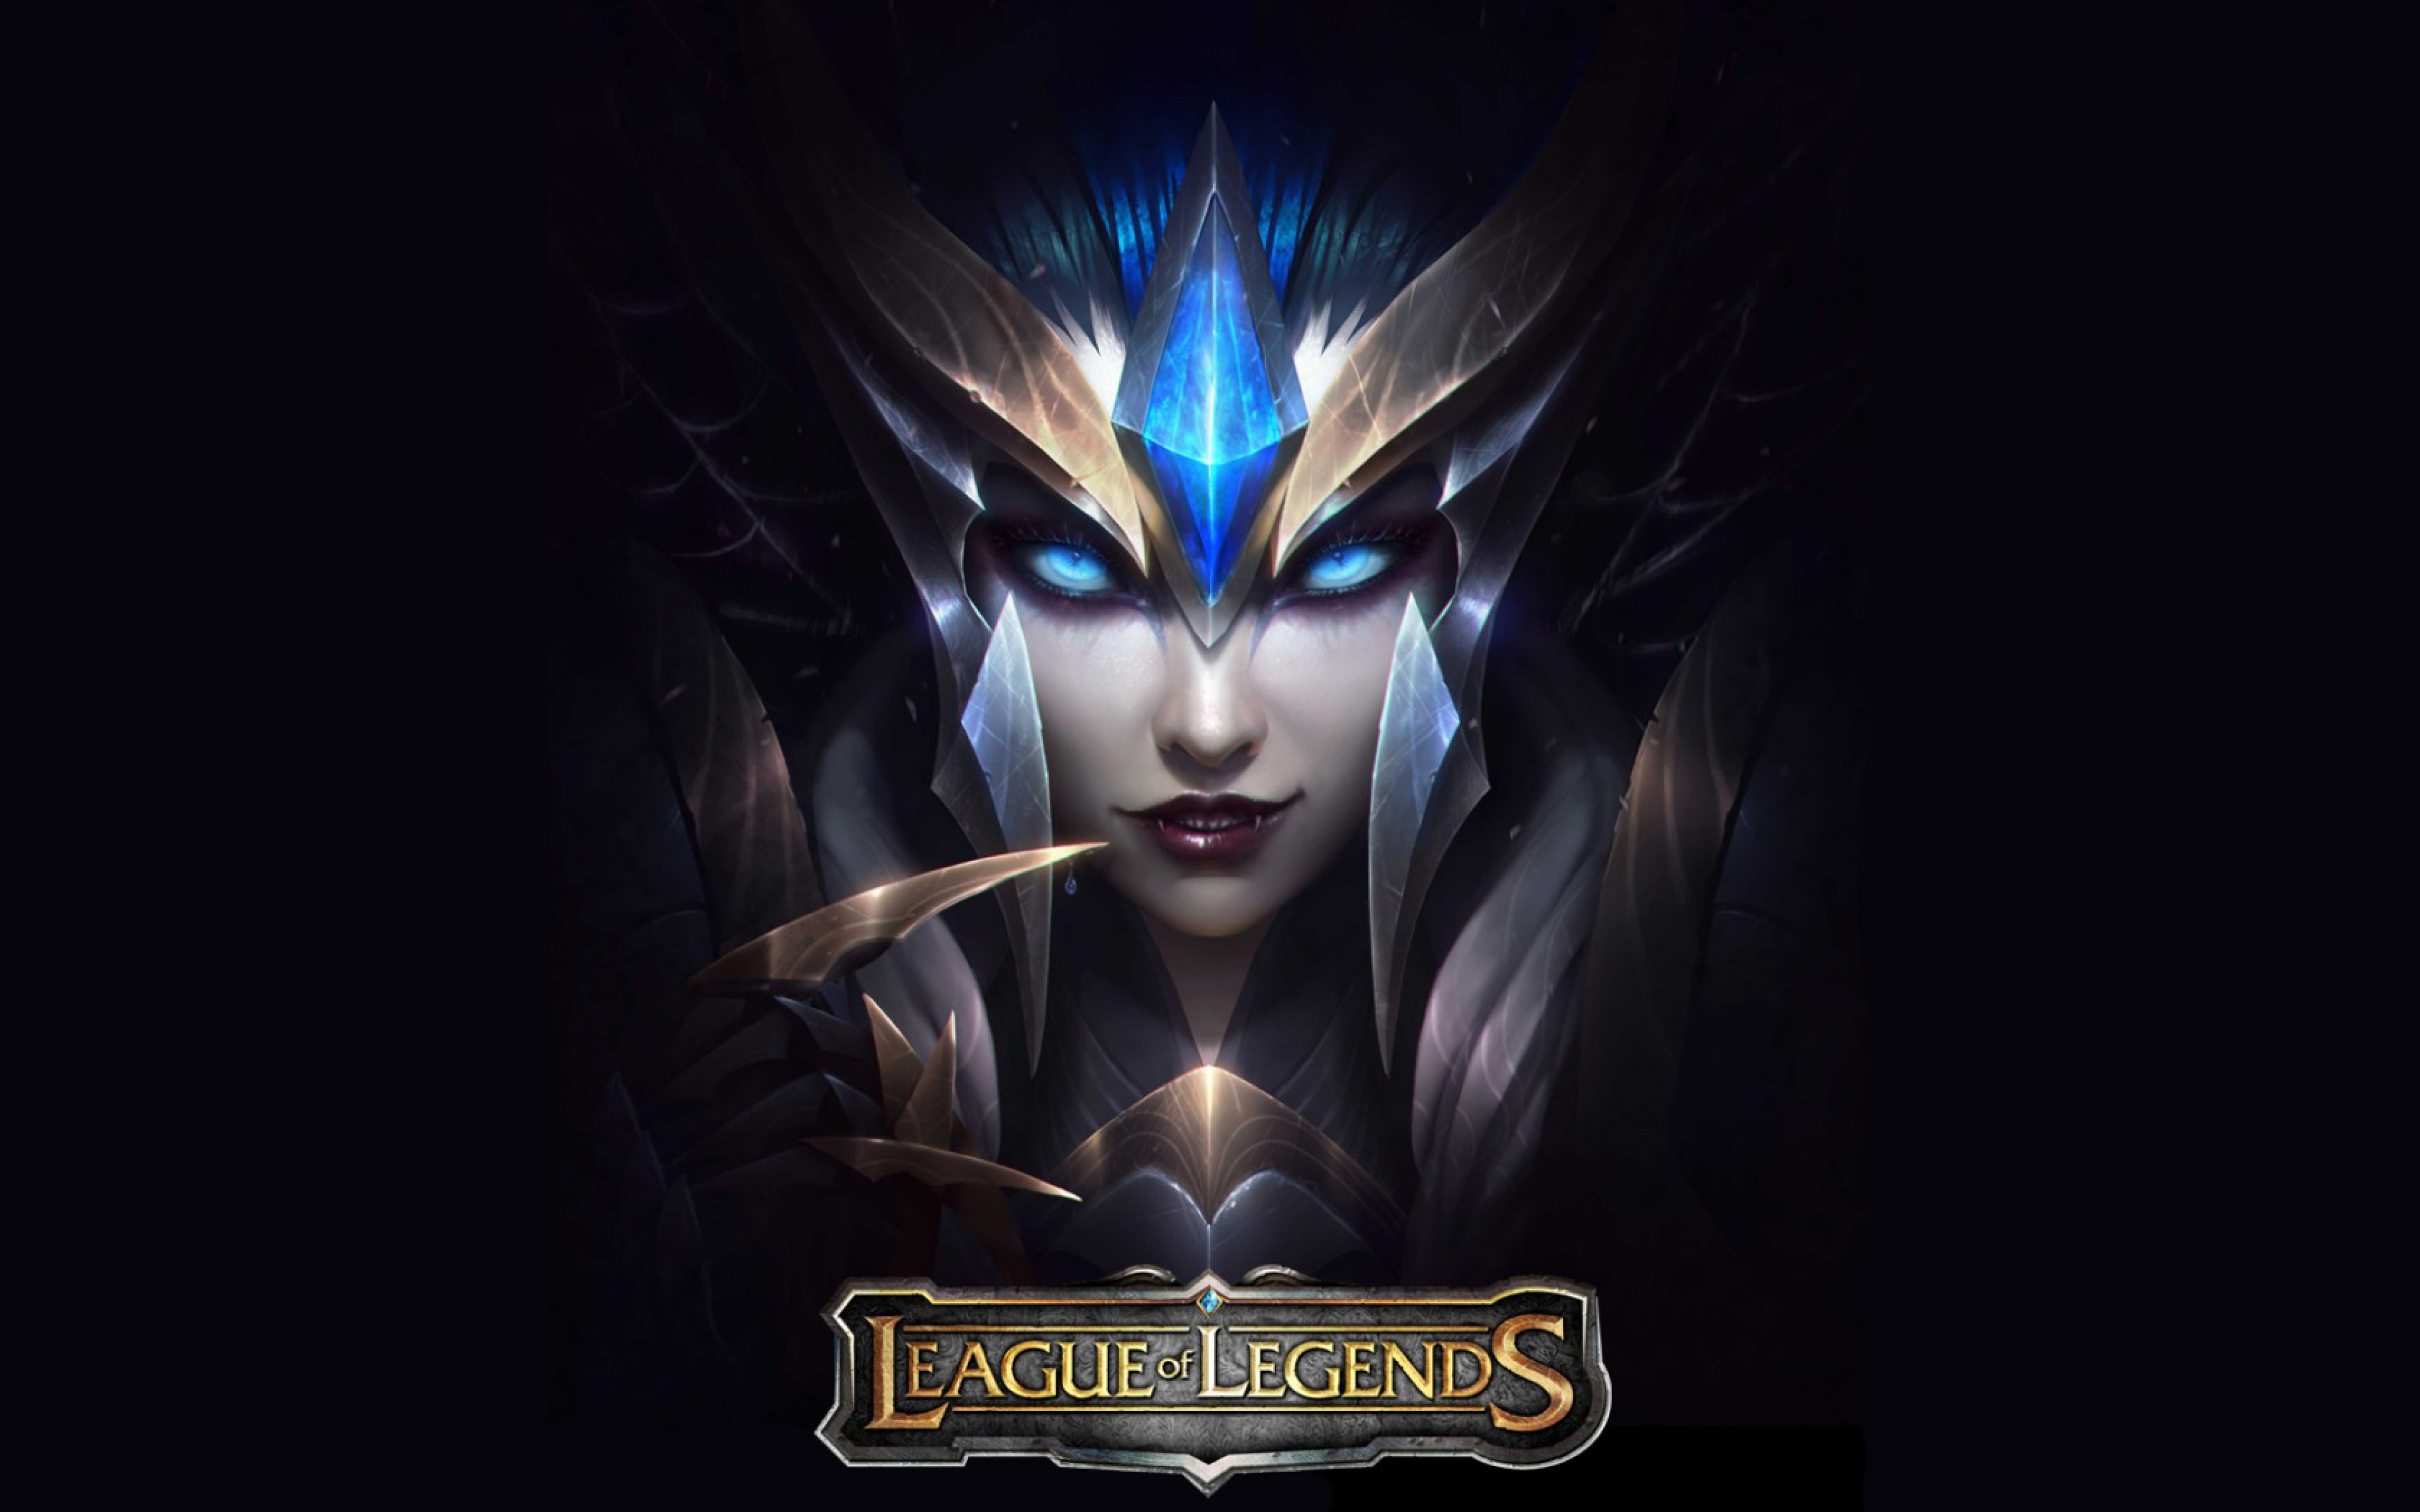 Free Download 3840x2400 Wallpaper League Of Legends Lol Elise Girl